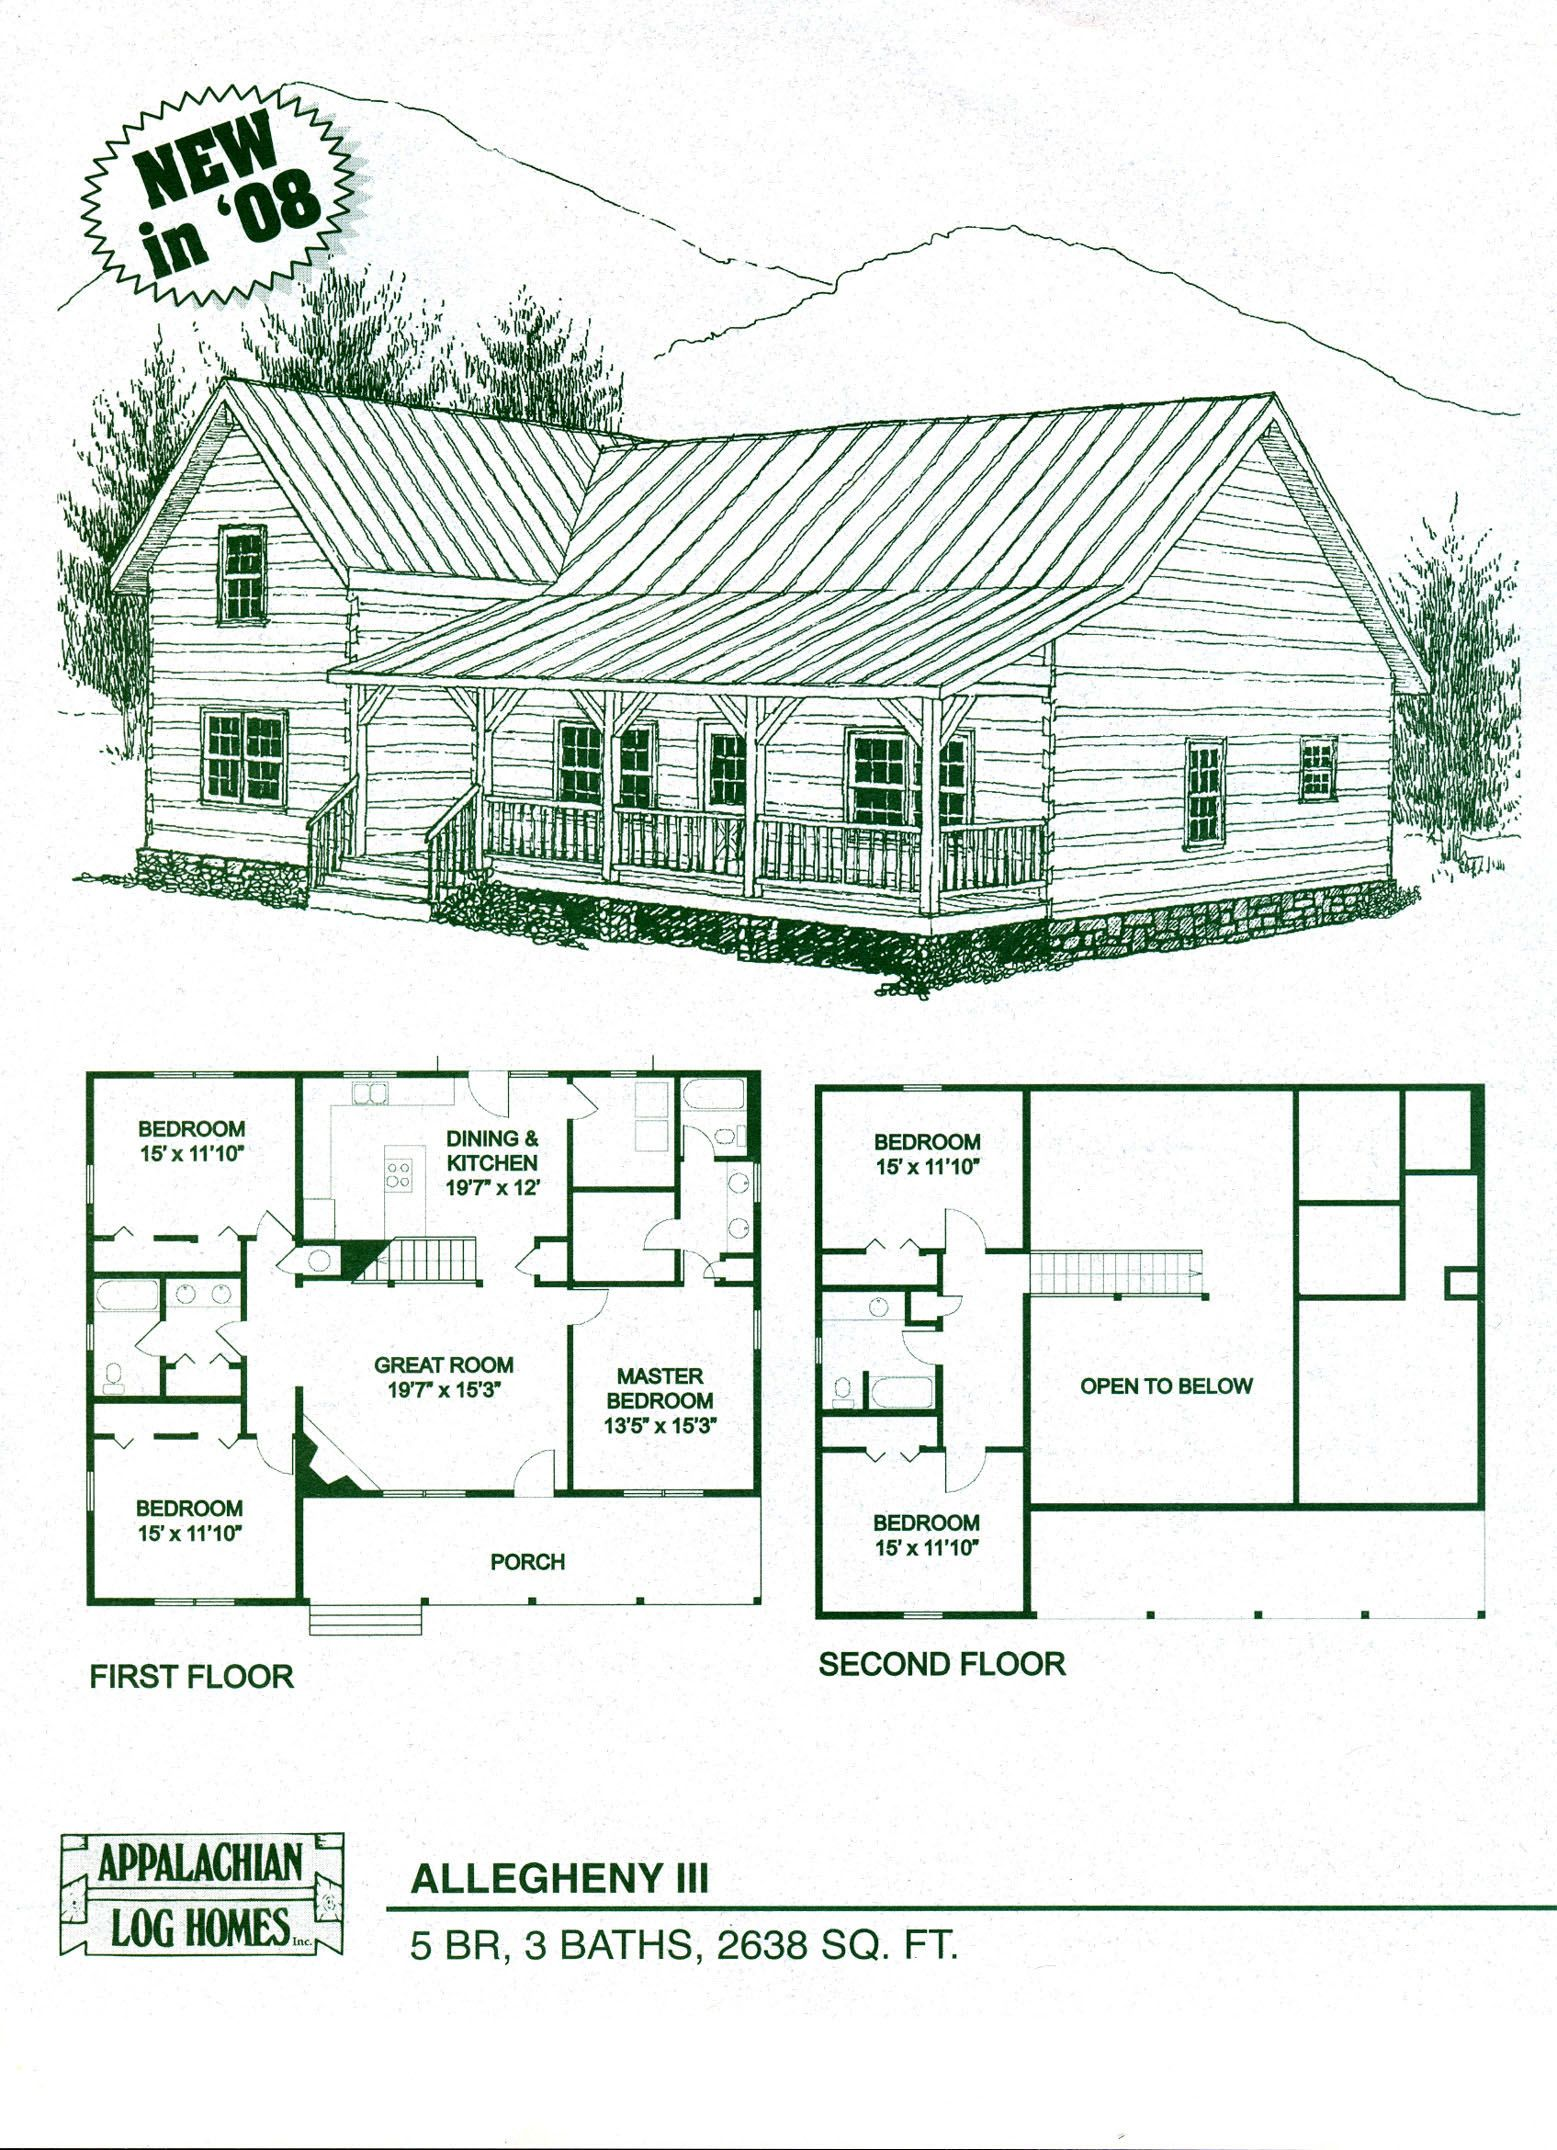 Log home floor plans log cabin kits appalachian log for Easy log cabin plans